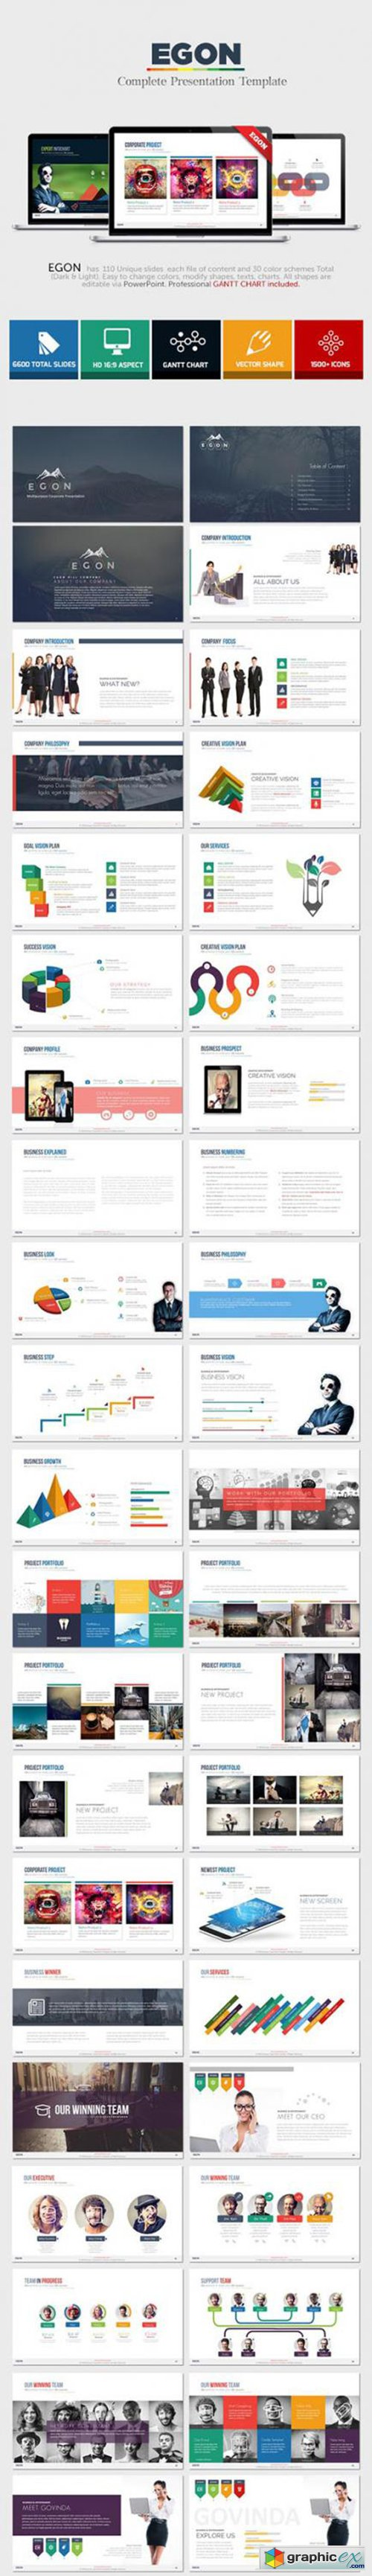 Egon - Complete Powerpoint Template